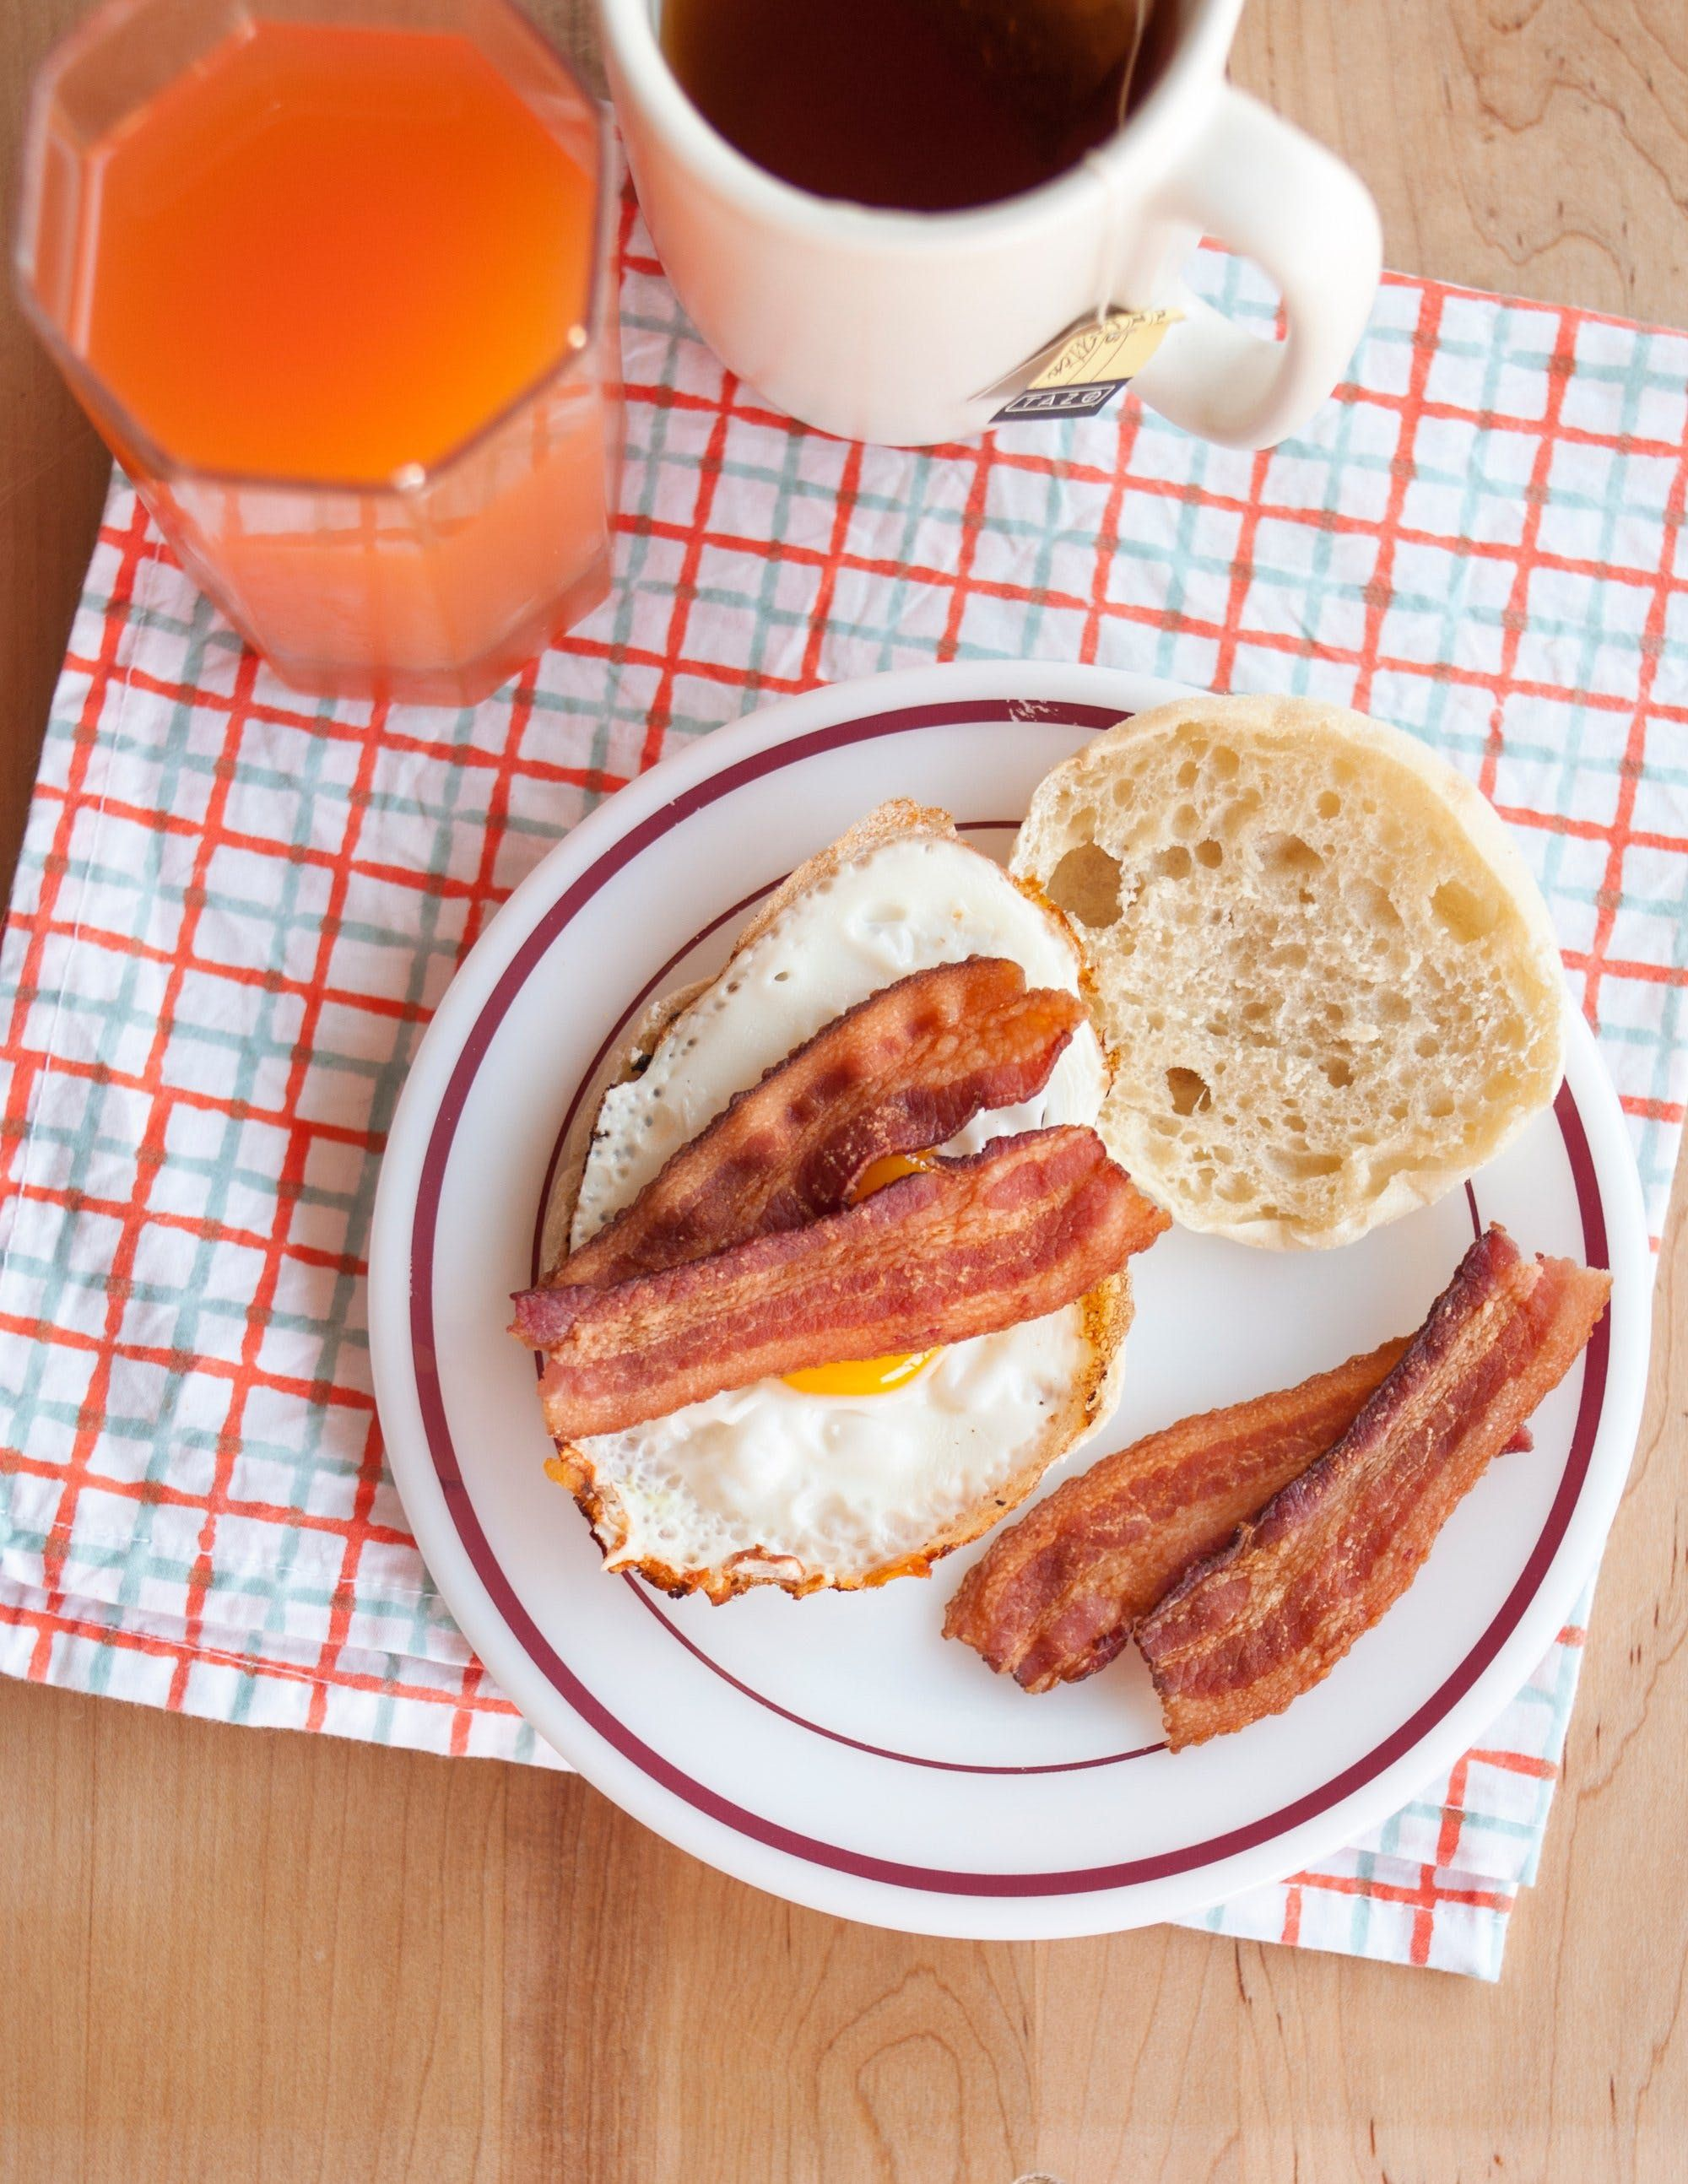 How To Cook Bacon In The Microwave Fun Trick For Cooking A College Dorm Room No Recipe Required Just Method Cleaner Than Oven And